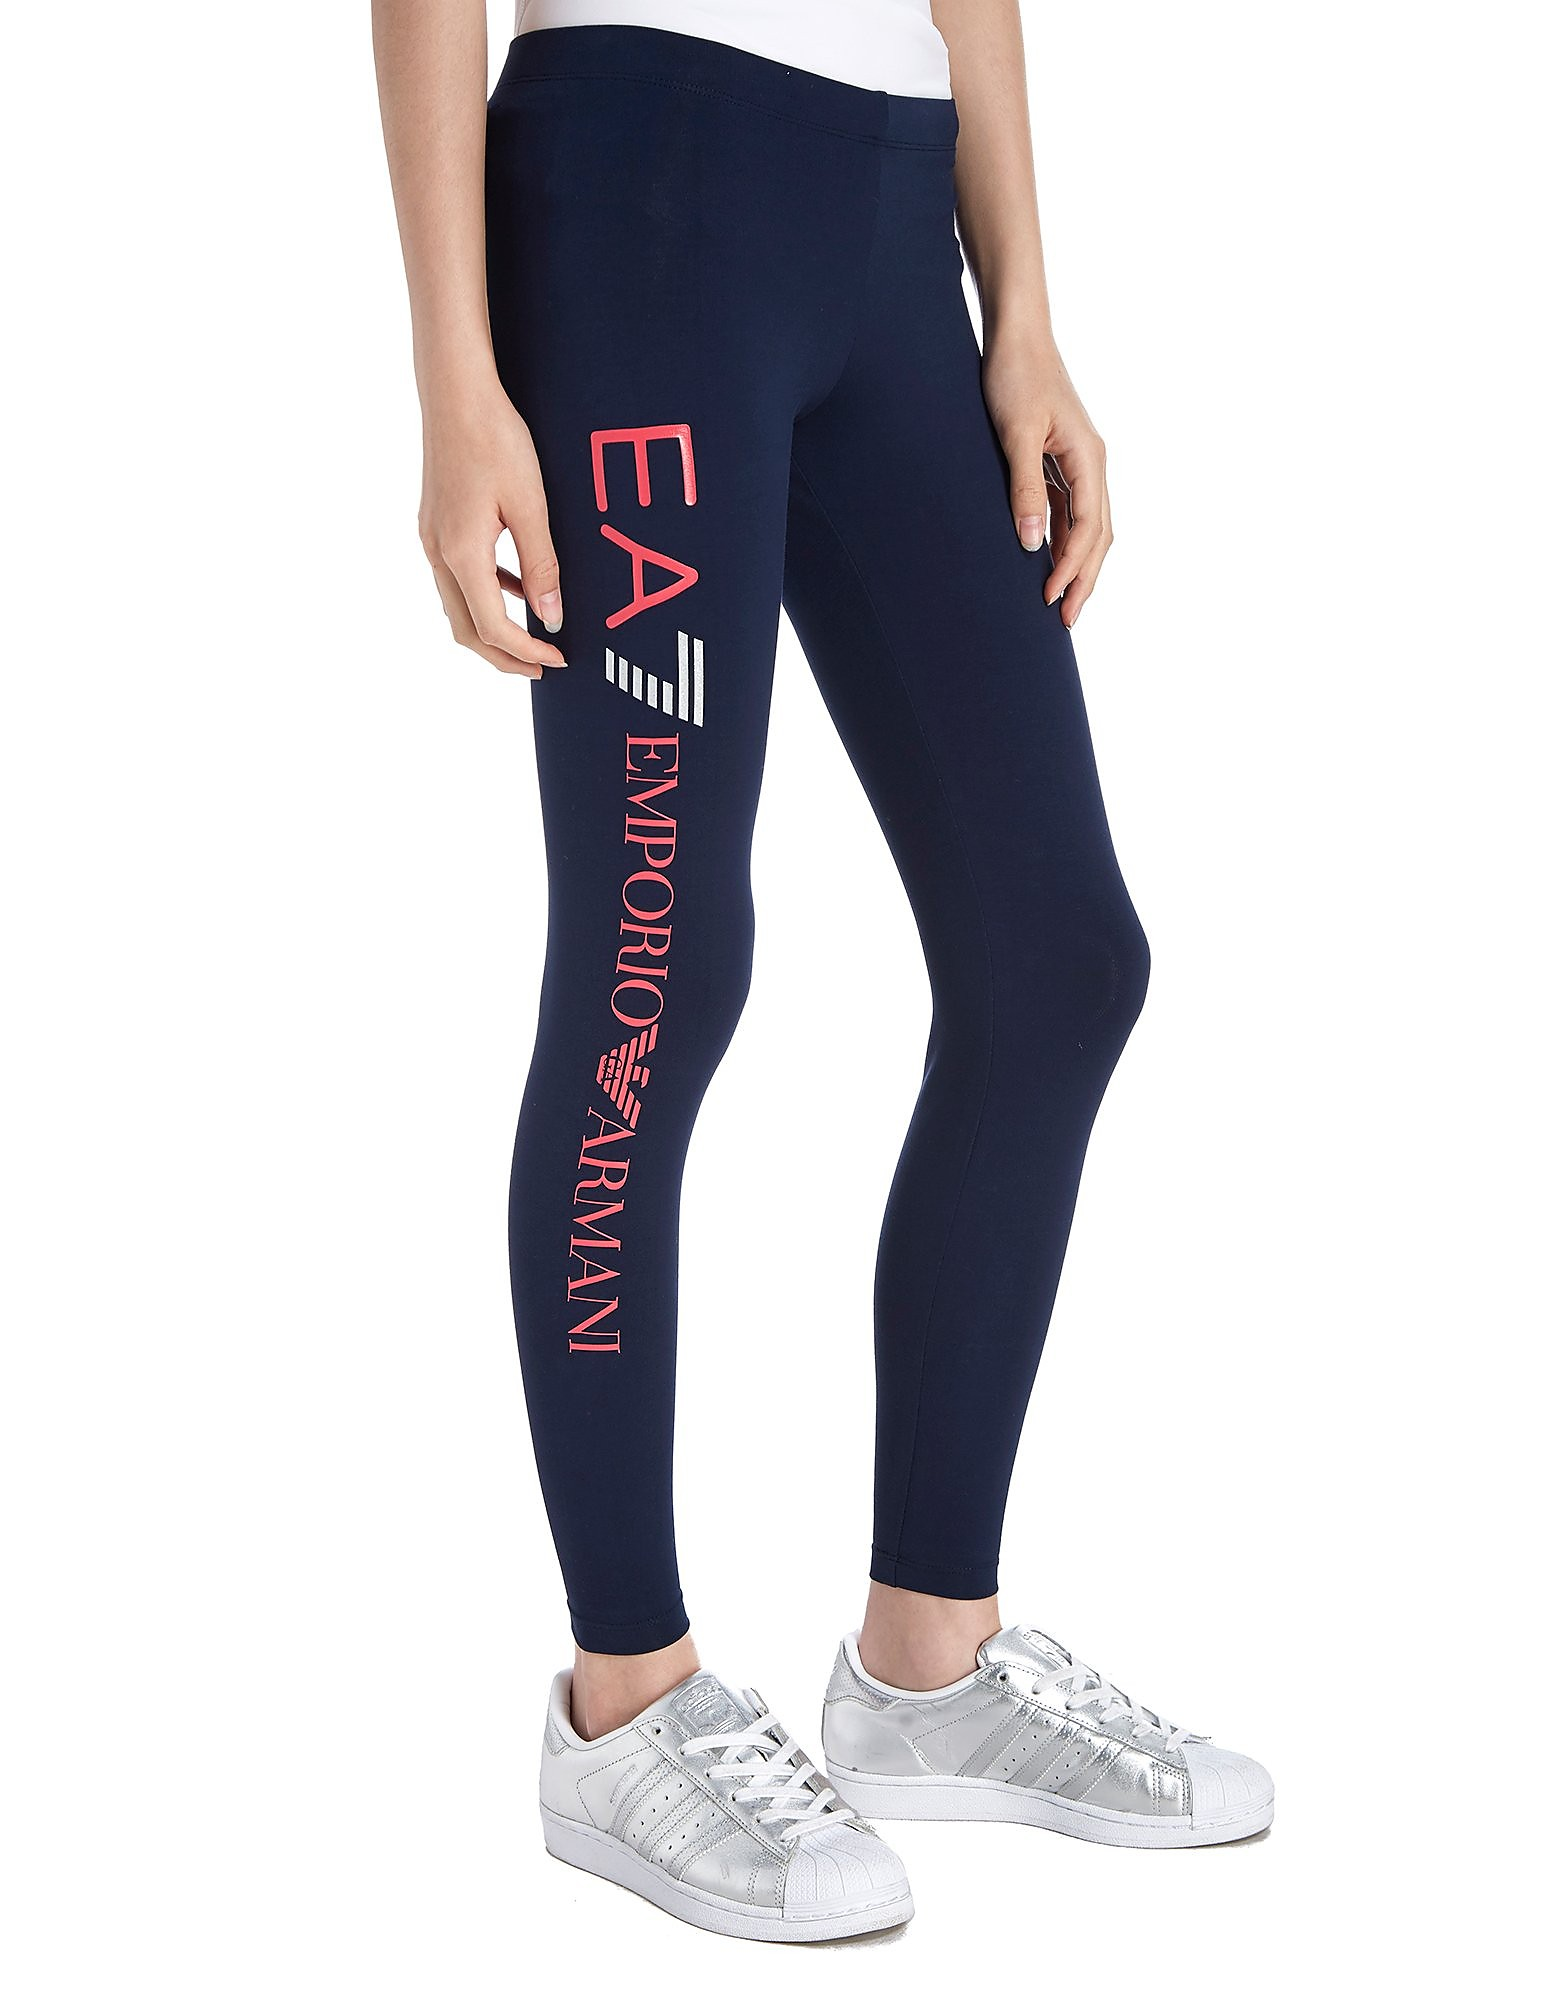 Emporio Armani EA7 Gloss Leggings Junior Fille